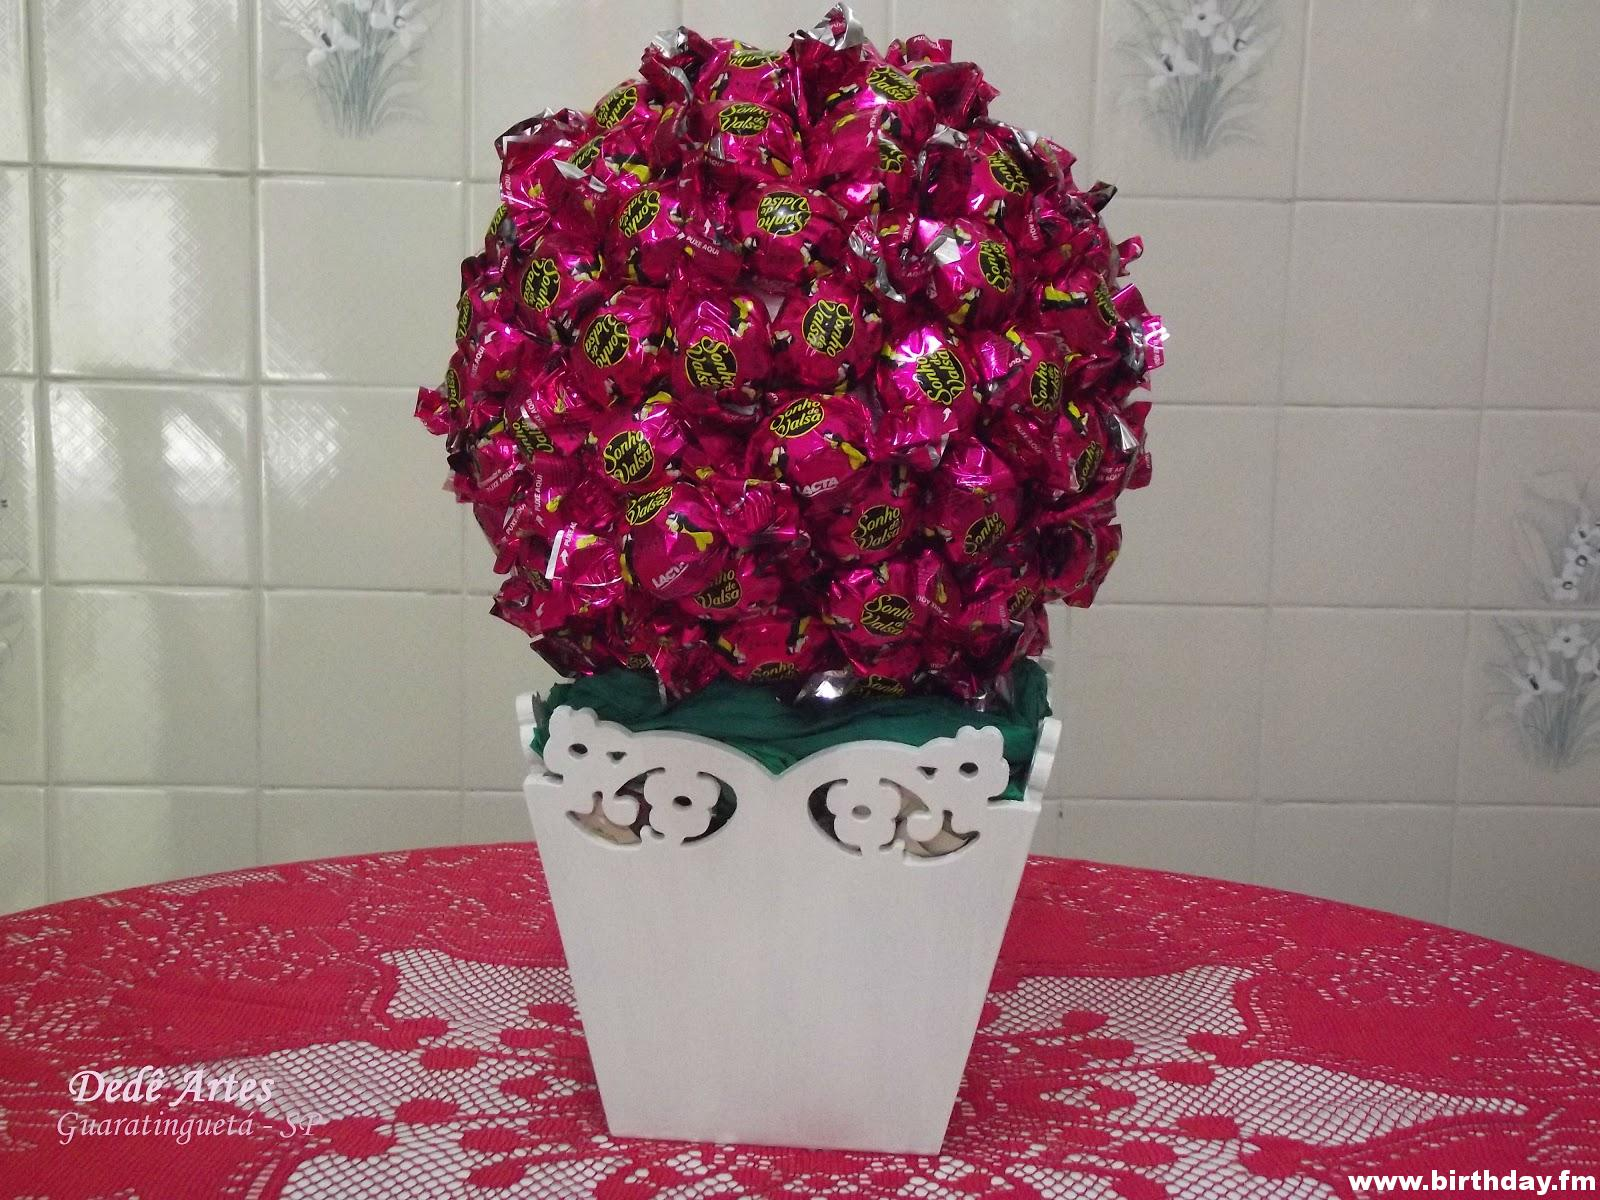 How To Make Candy Tree Or Candy Topiary Birthday Fm Home Of Birtday Inspirations Wishes Diy Music Ideas